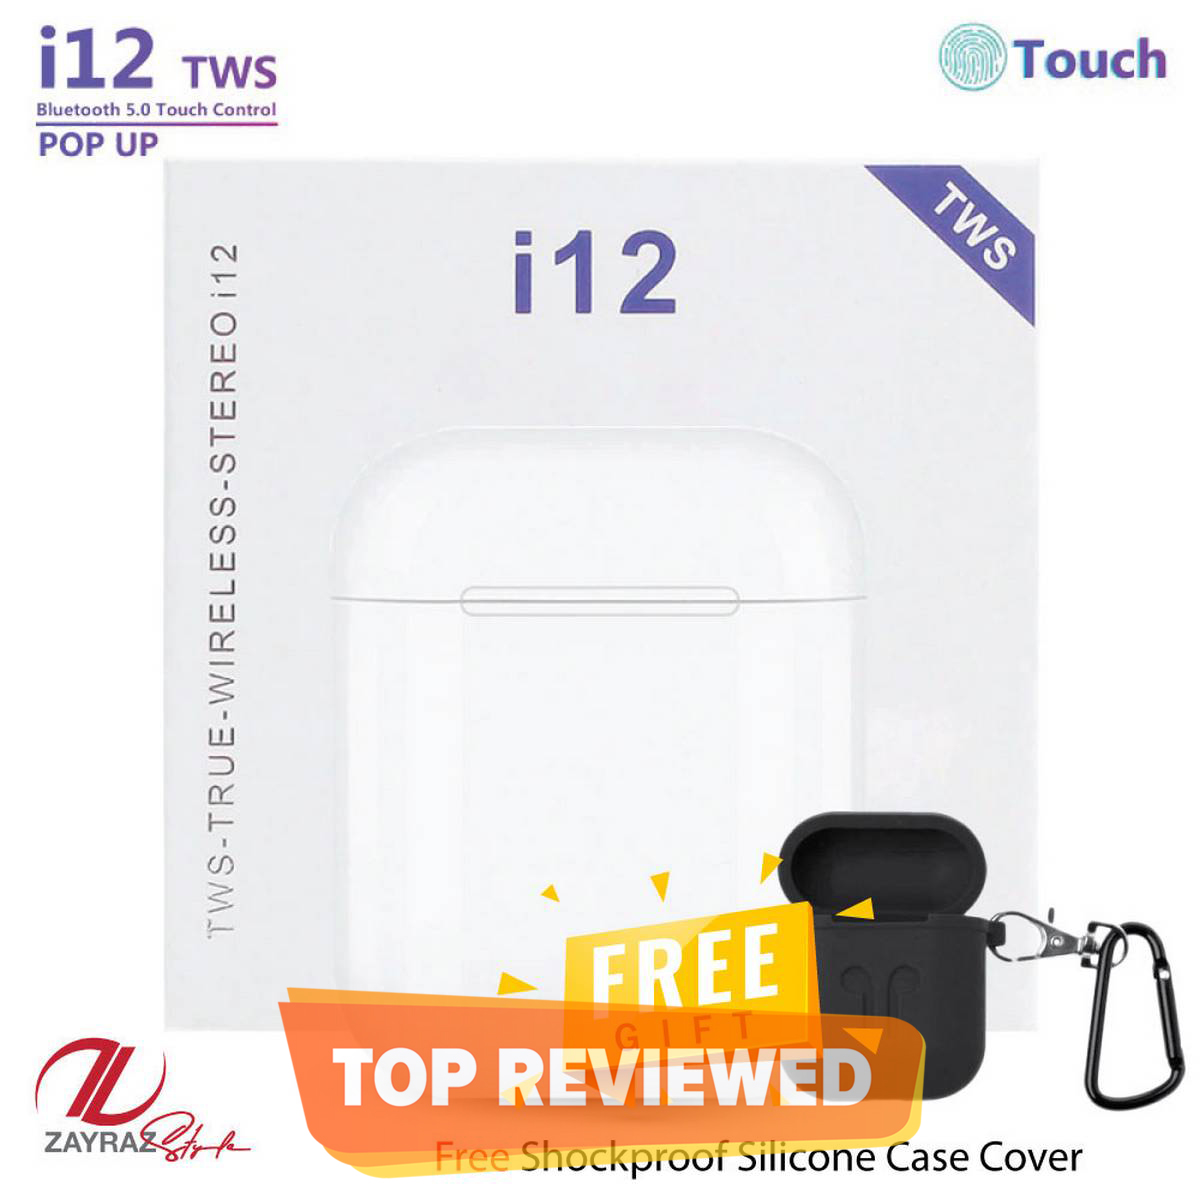 i12 TWS  Bluetooth Ear Pods Double V 5.0 by Zayraz with Double Touch Sensor High Quality Ear Pods – Sport Stereo Double V 5.0 Ear buds with Charging Dock + Free Cover Case as a Gift